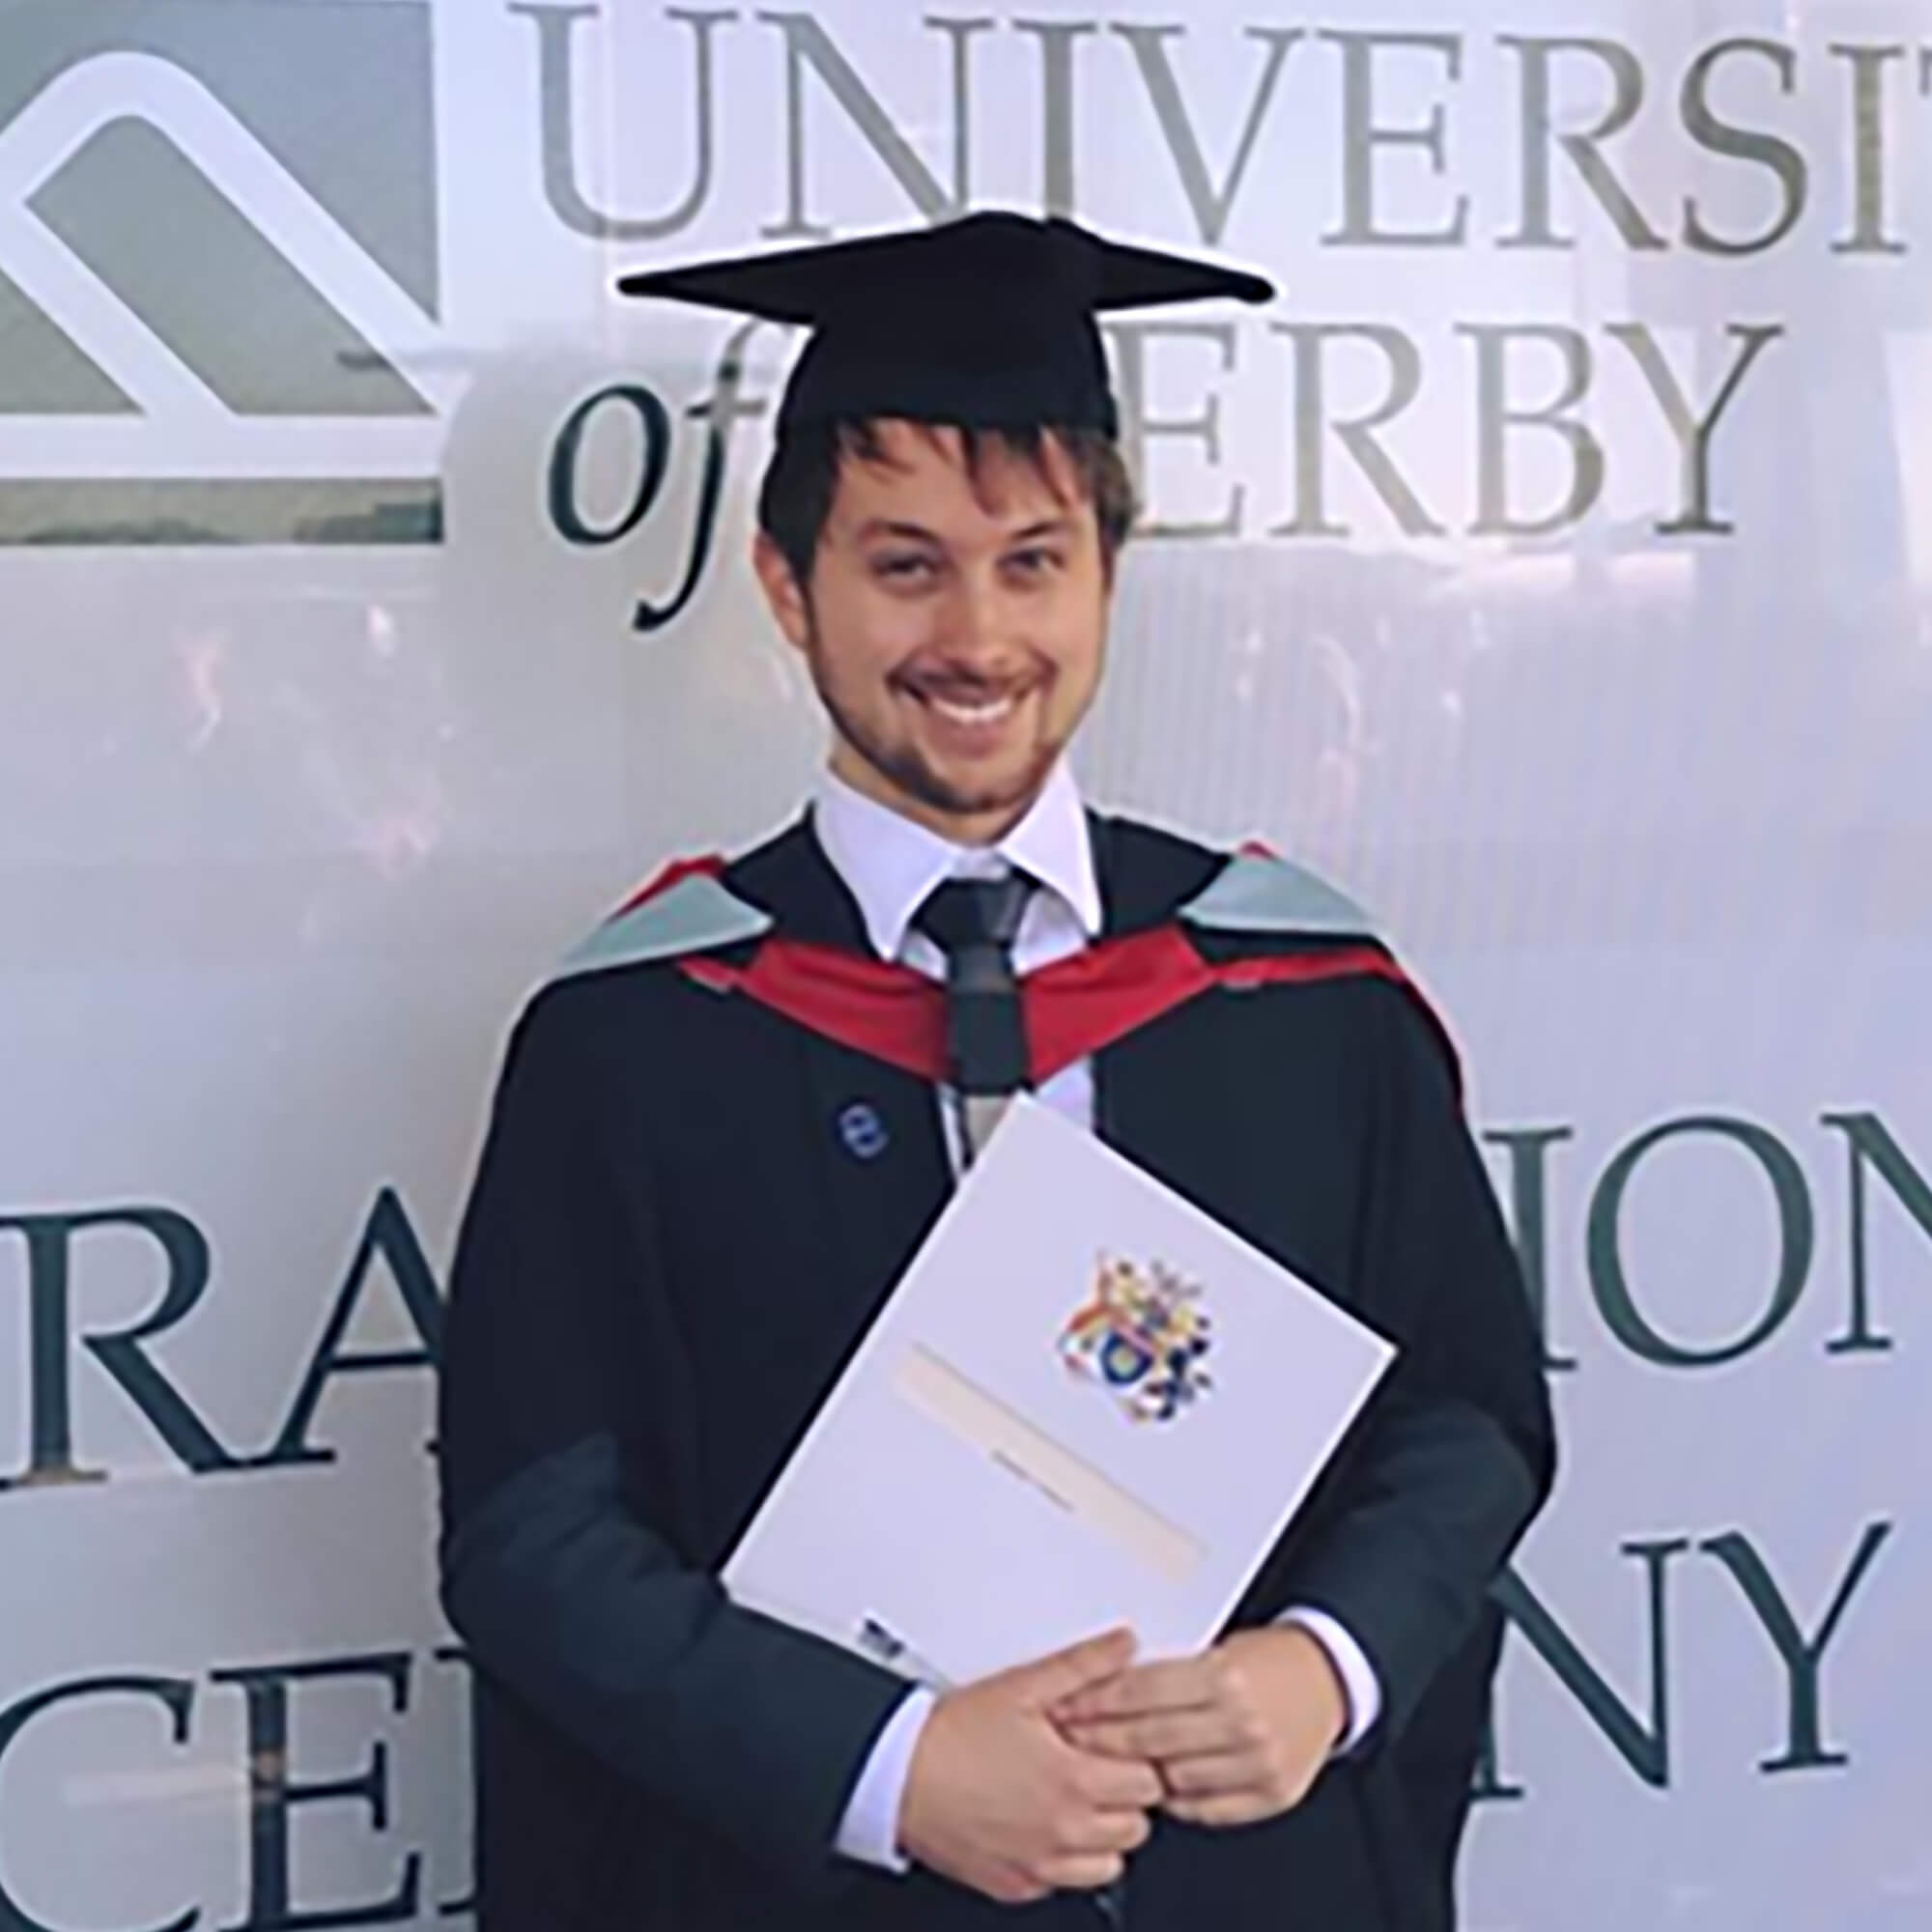 Robert at his graduation ceremony